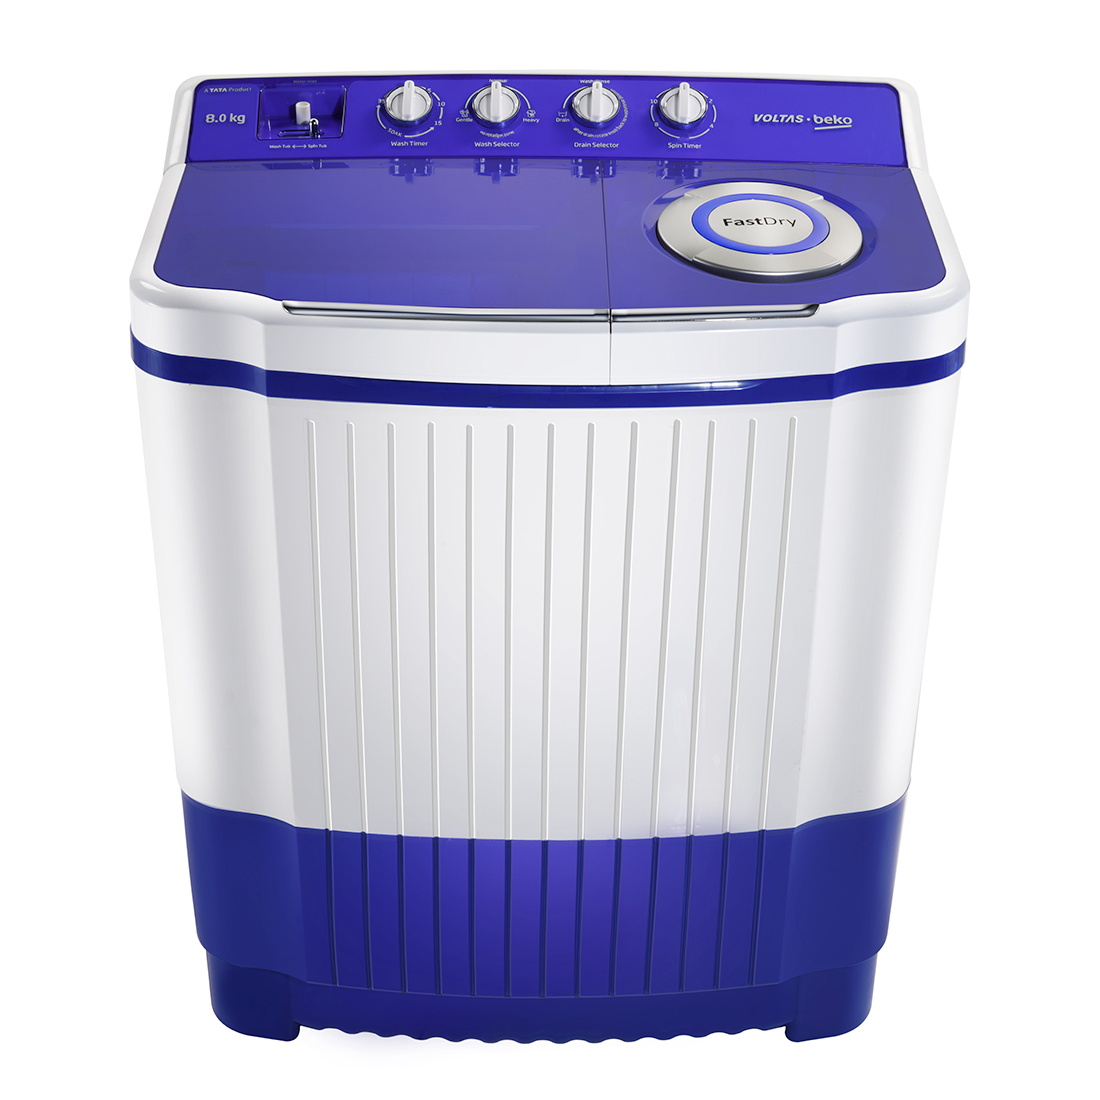 Voltas Beko WTT85 8.5 Kg Semi Automatic Top Loading Washing Machine